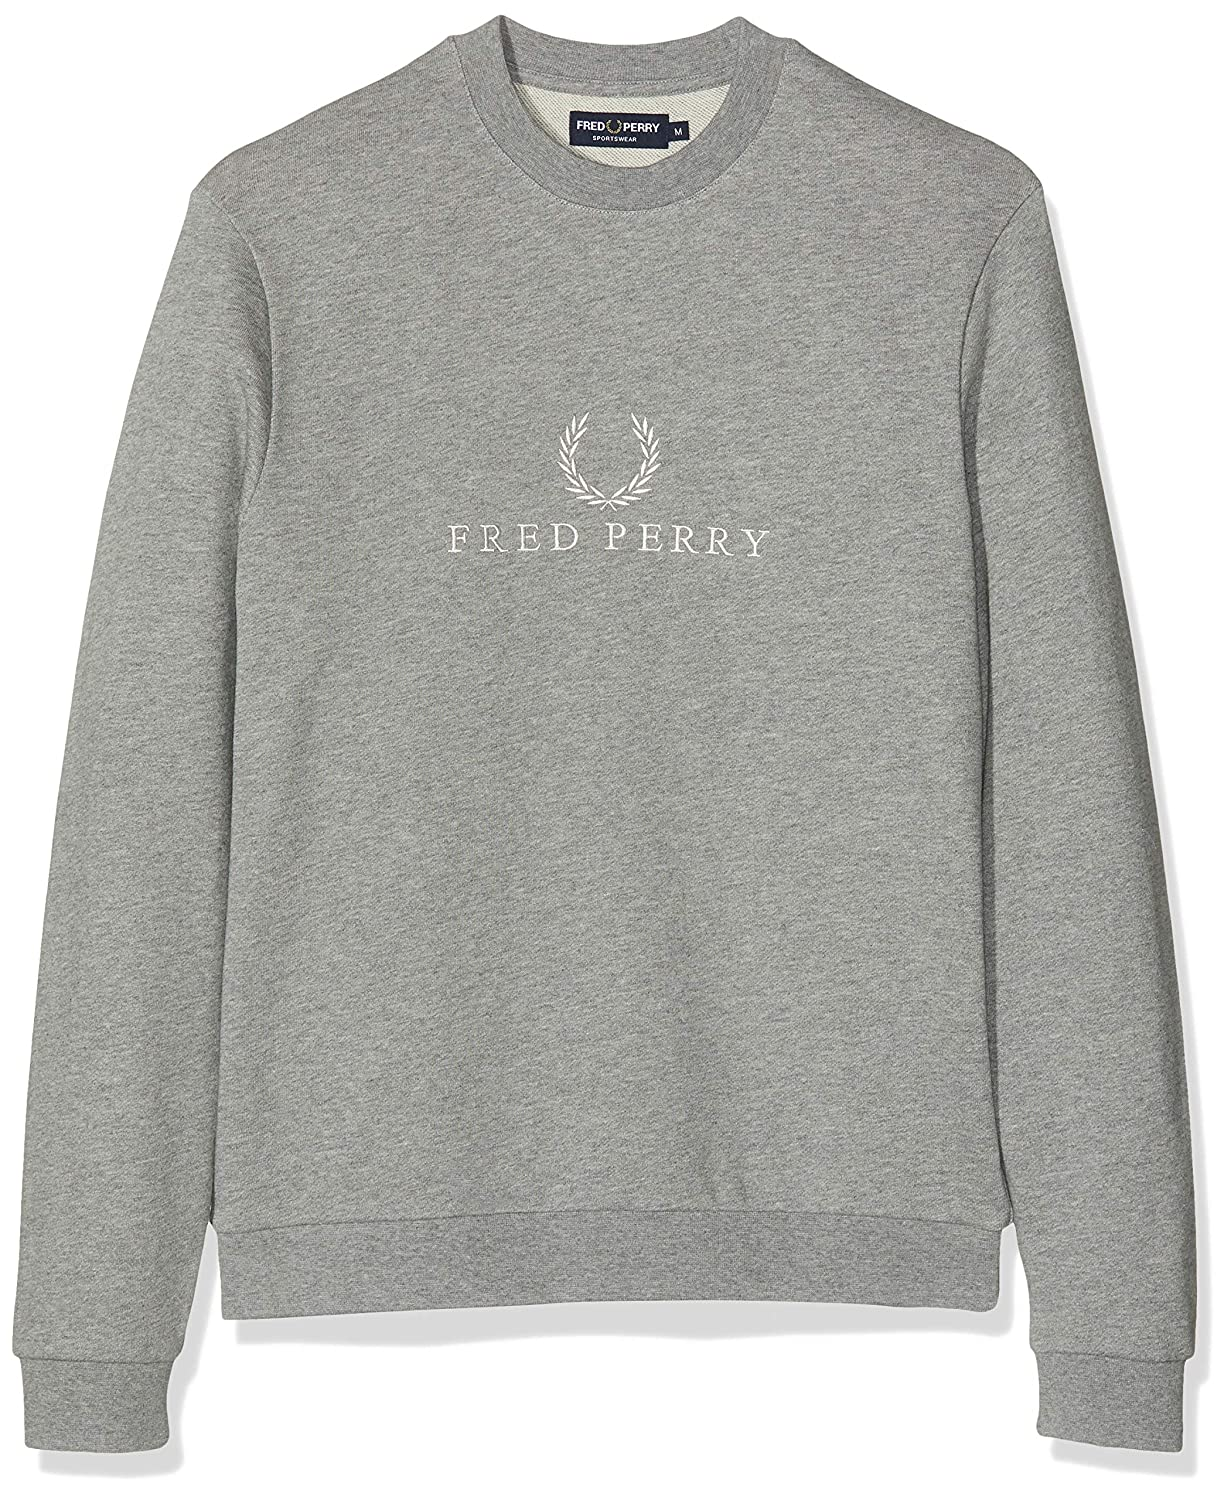 Fred Perry M2606-EMBROIDERED SWEATSHIRT-420-L Sudadera con Capucha ...